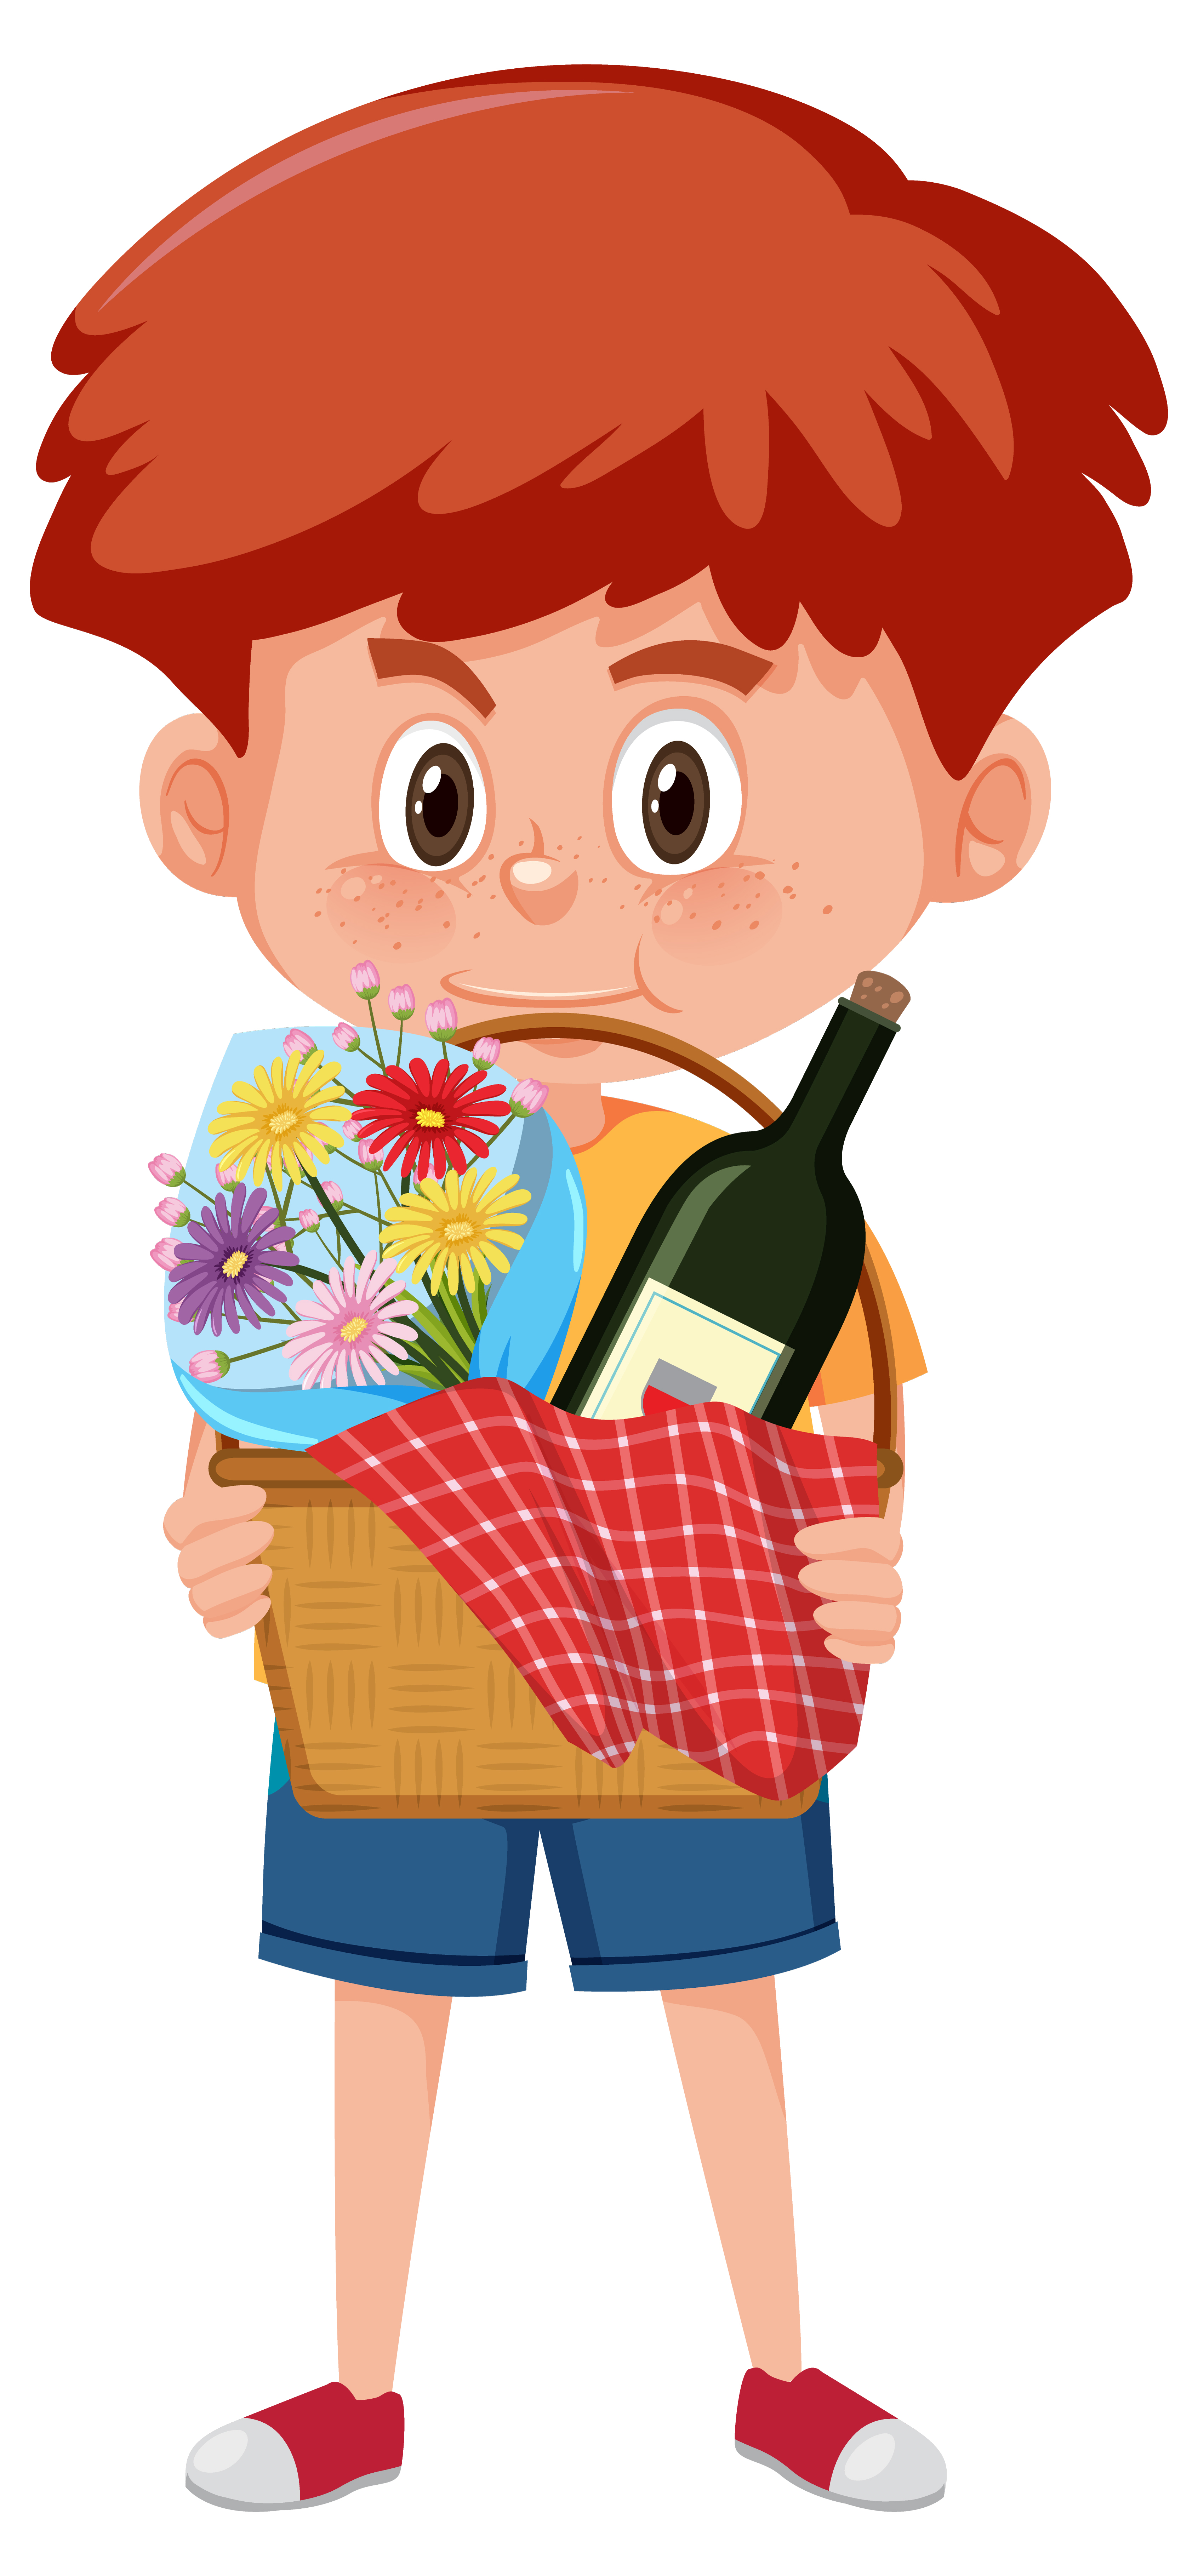 Boy Holding Picnic Basket Cartoon Download Free Vectors Clipart Graphics Vector Art